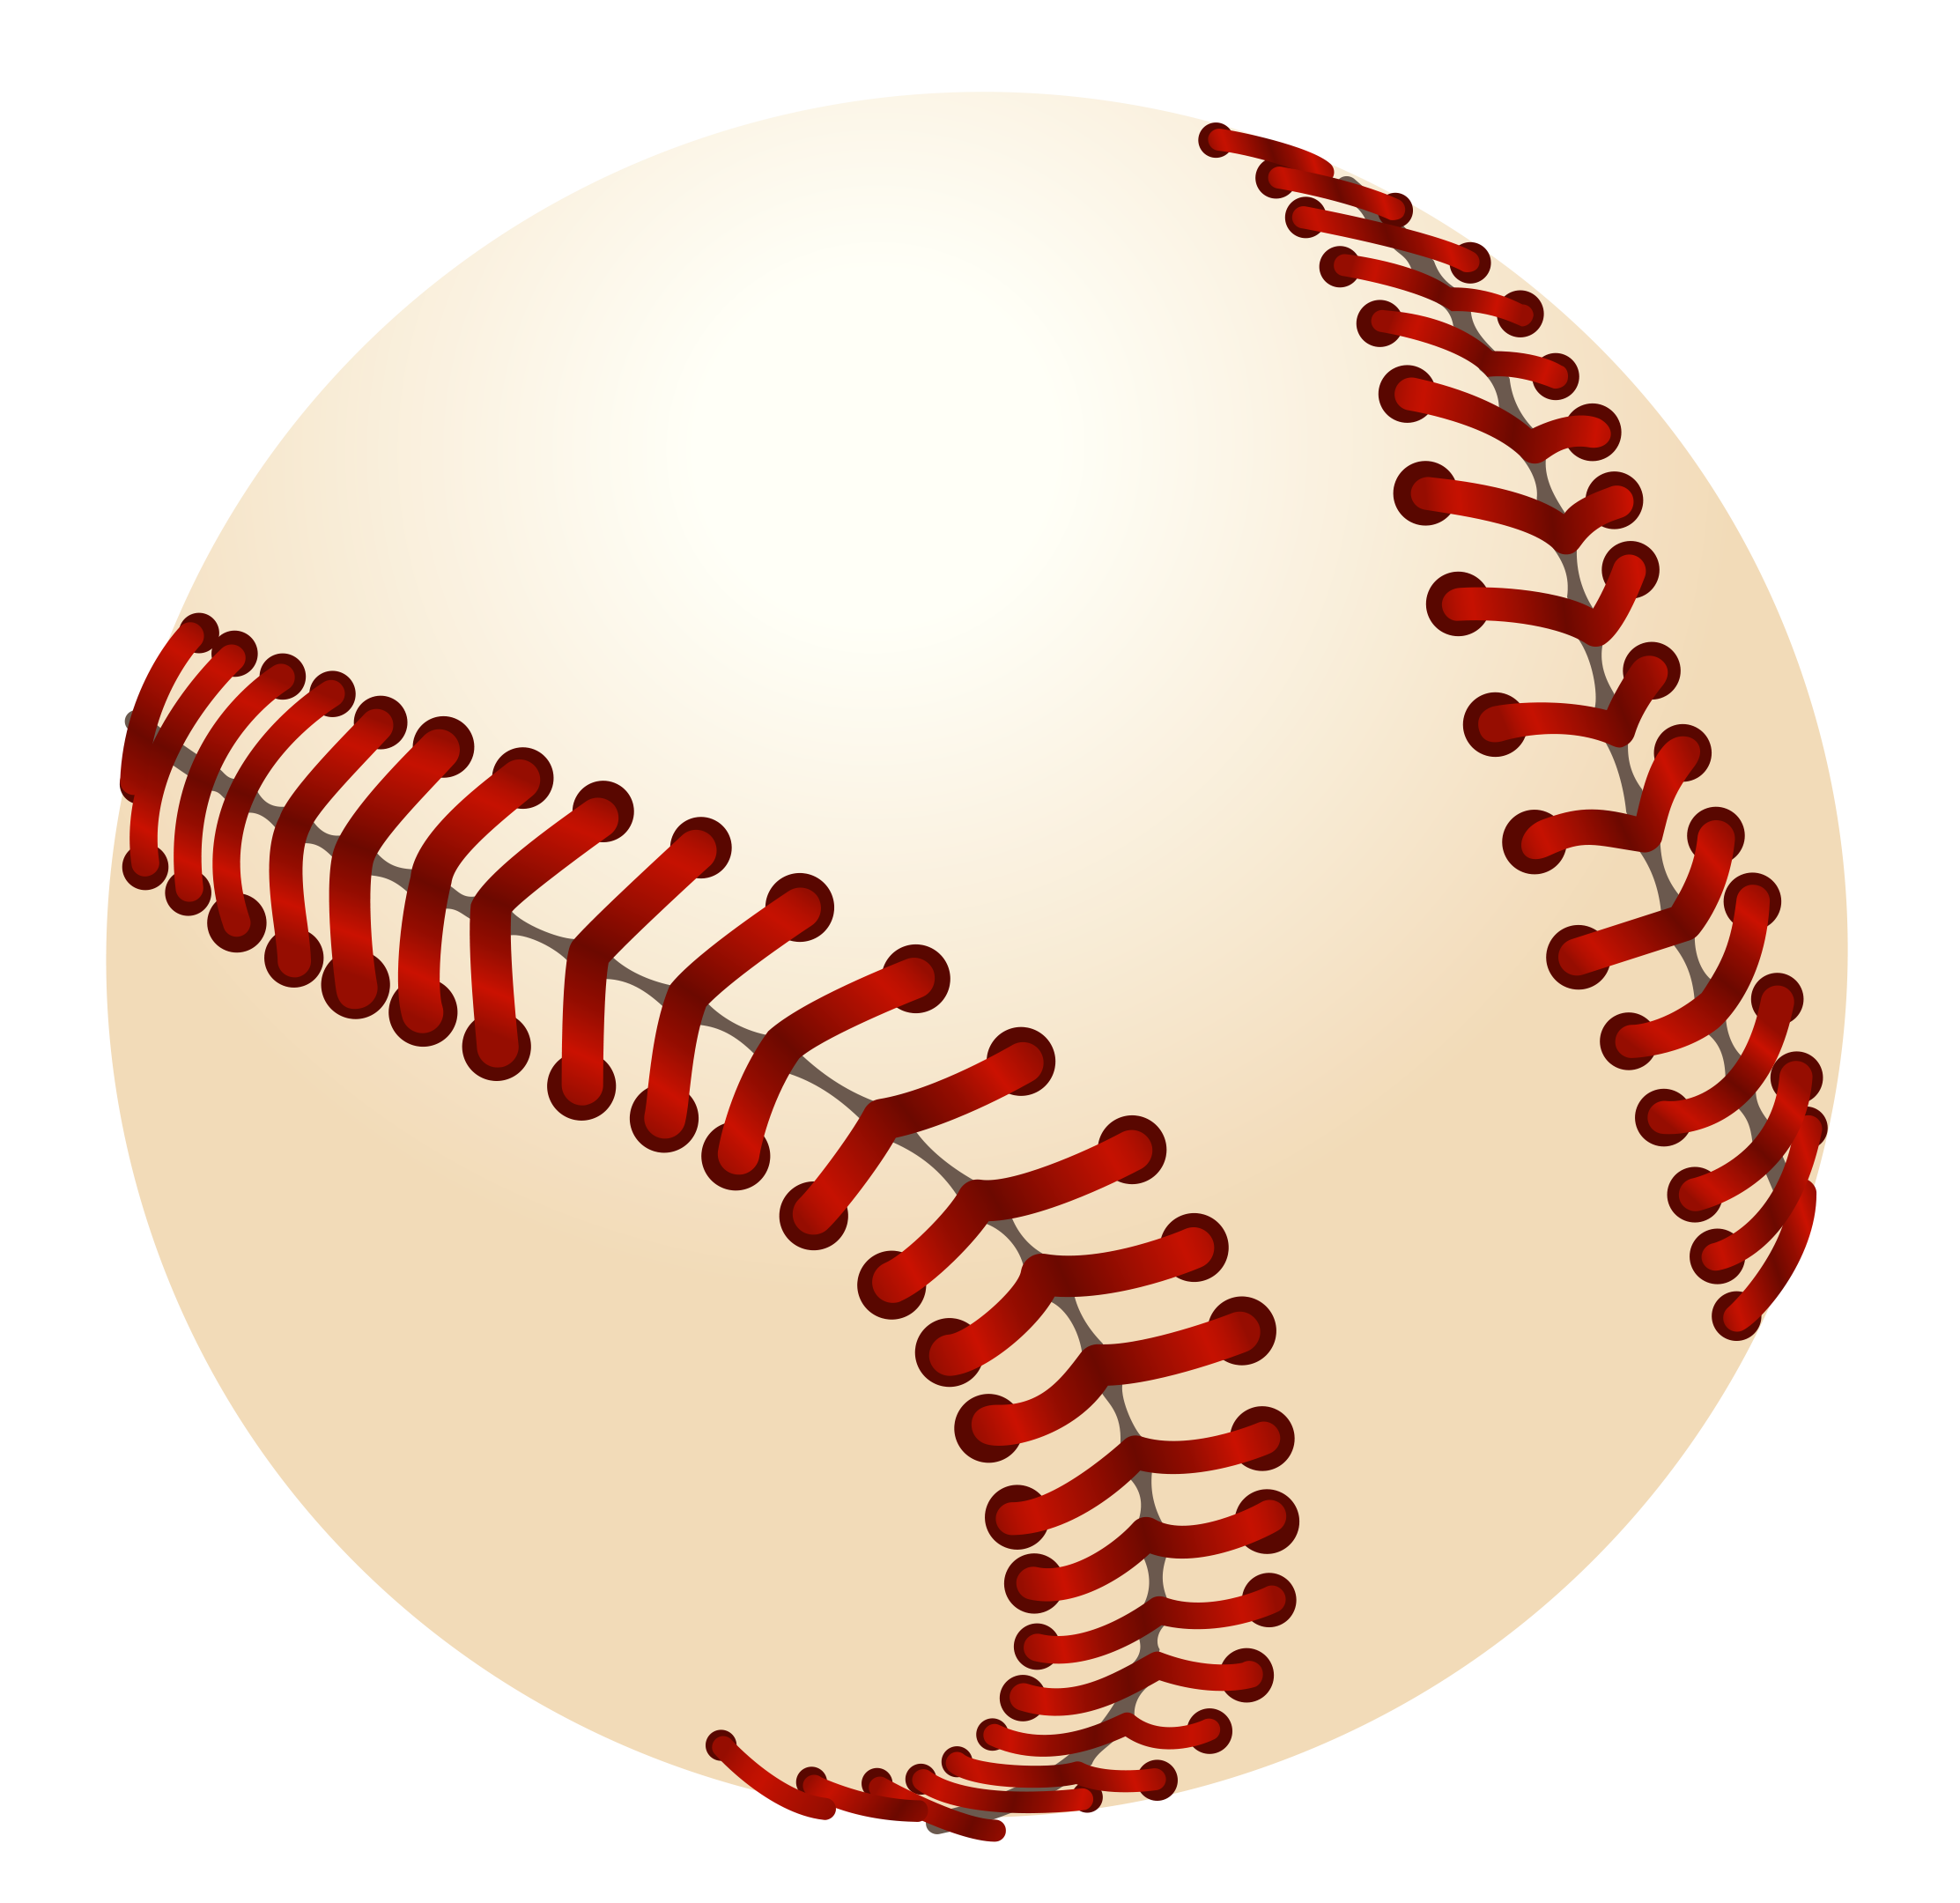 Baseball with bow clipart clip black and white stock Baseball PNG Image - PurePNG | Free transparent CC0 PNG Image Library clip black and white stock